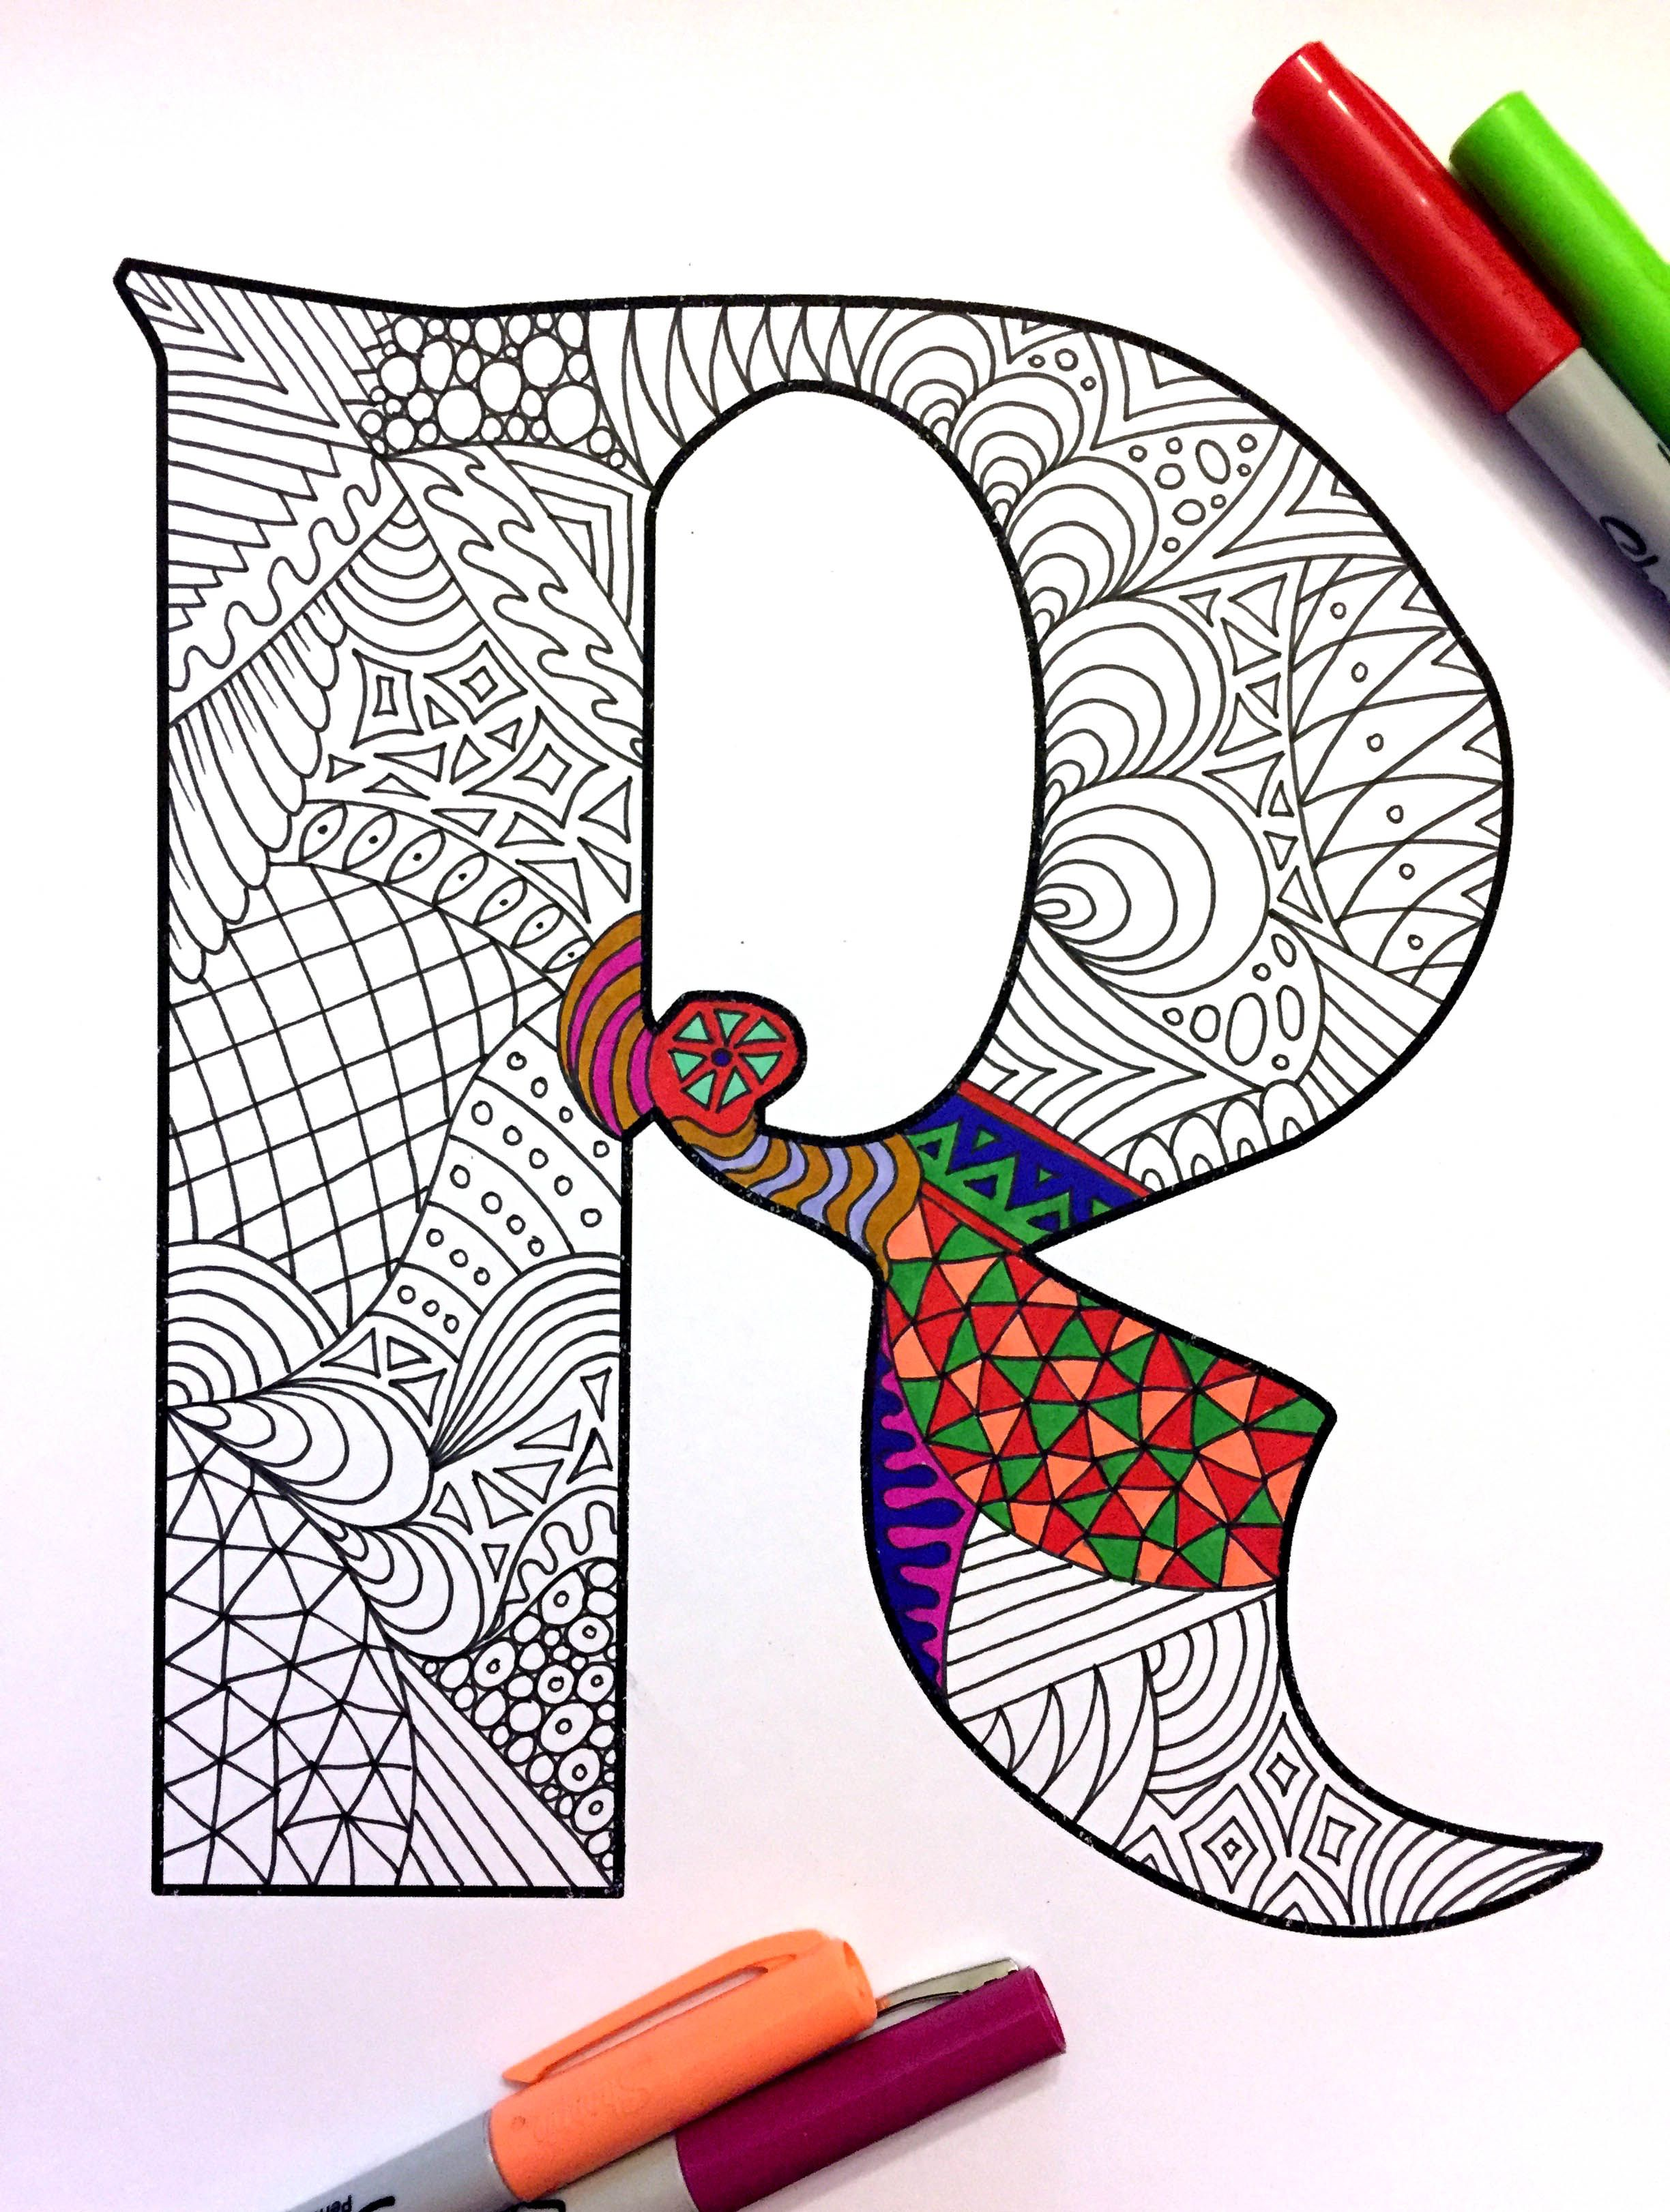 Scribbles Alphabet Nature Flowers Food Emojis And Symbols Coloring Book In 2020 Doodle Lettering Zentangle Patterns Colorful Drawings